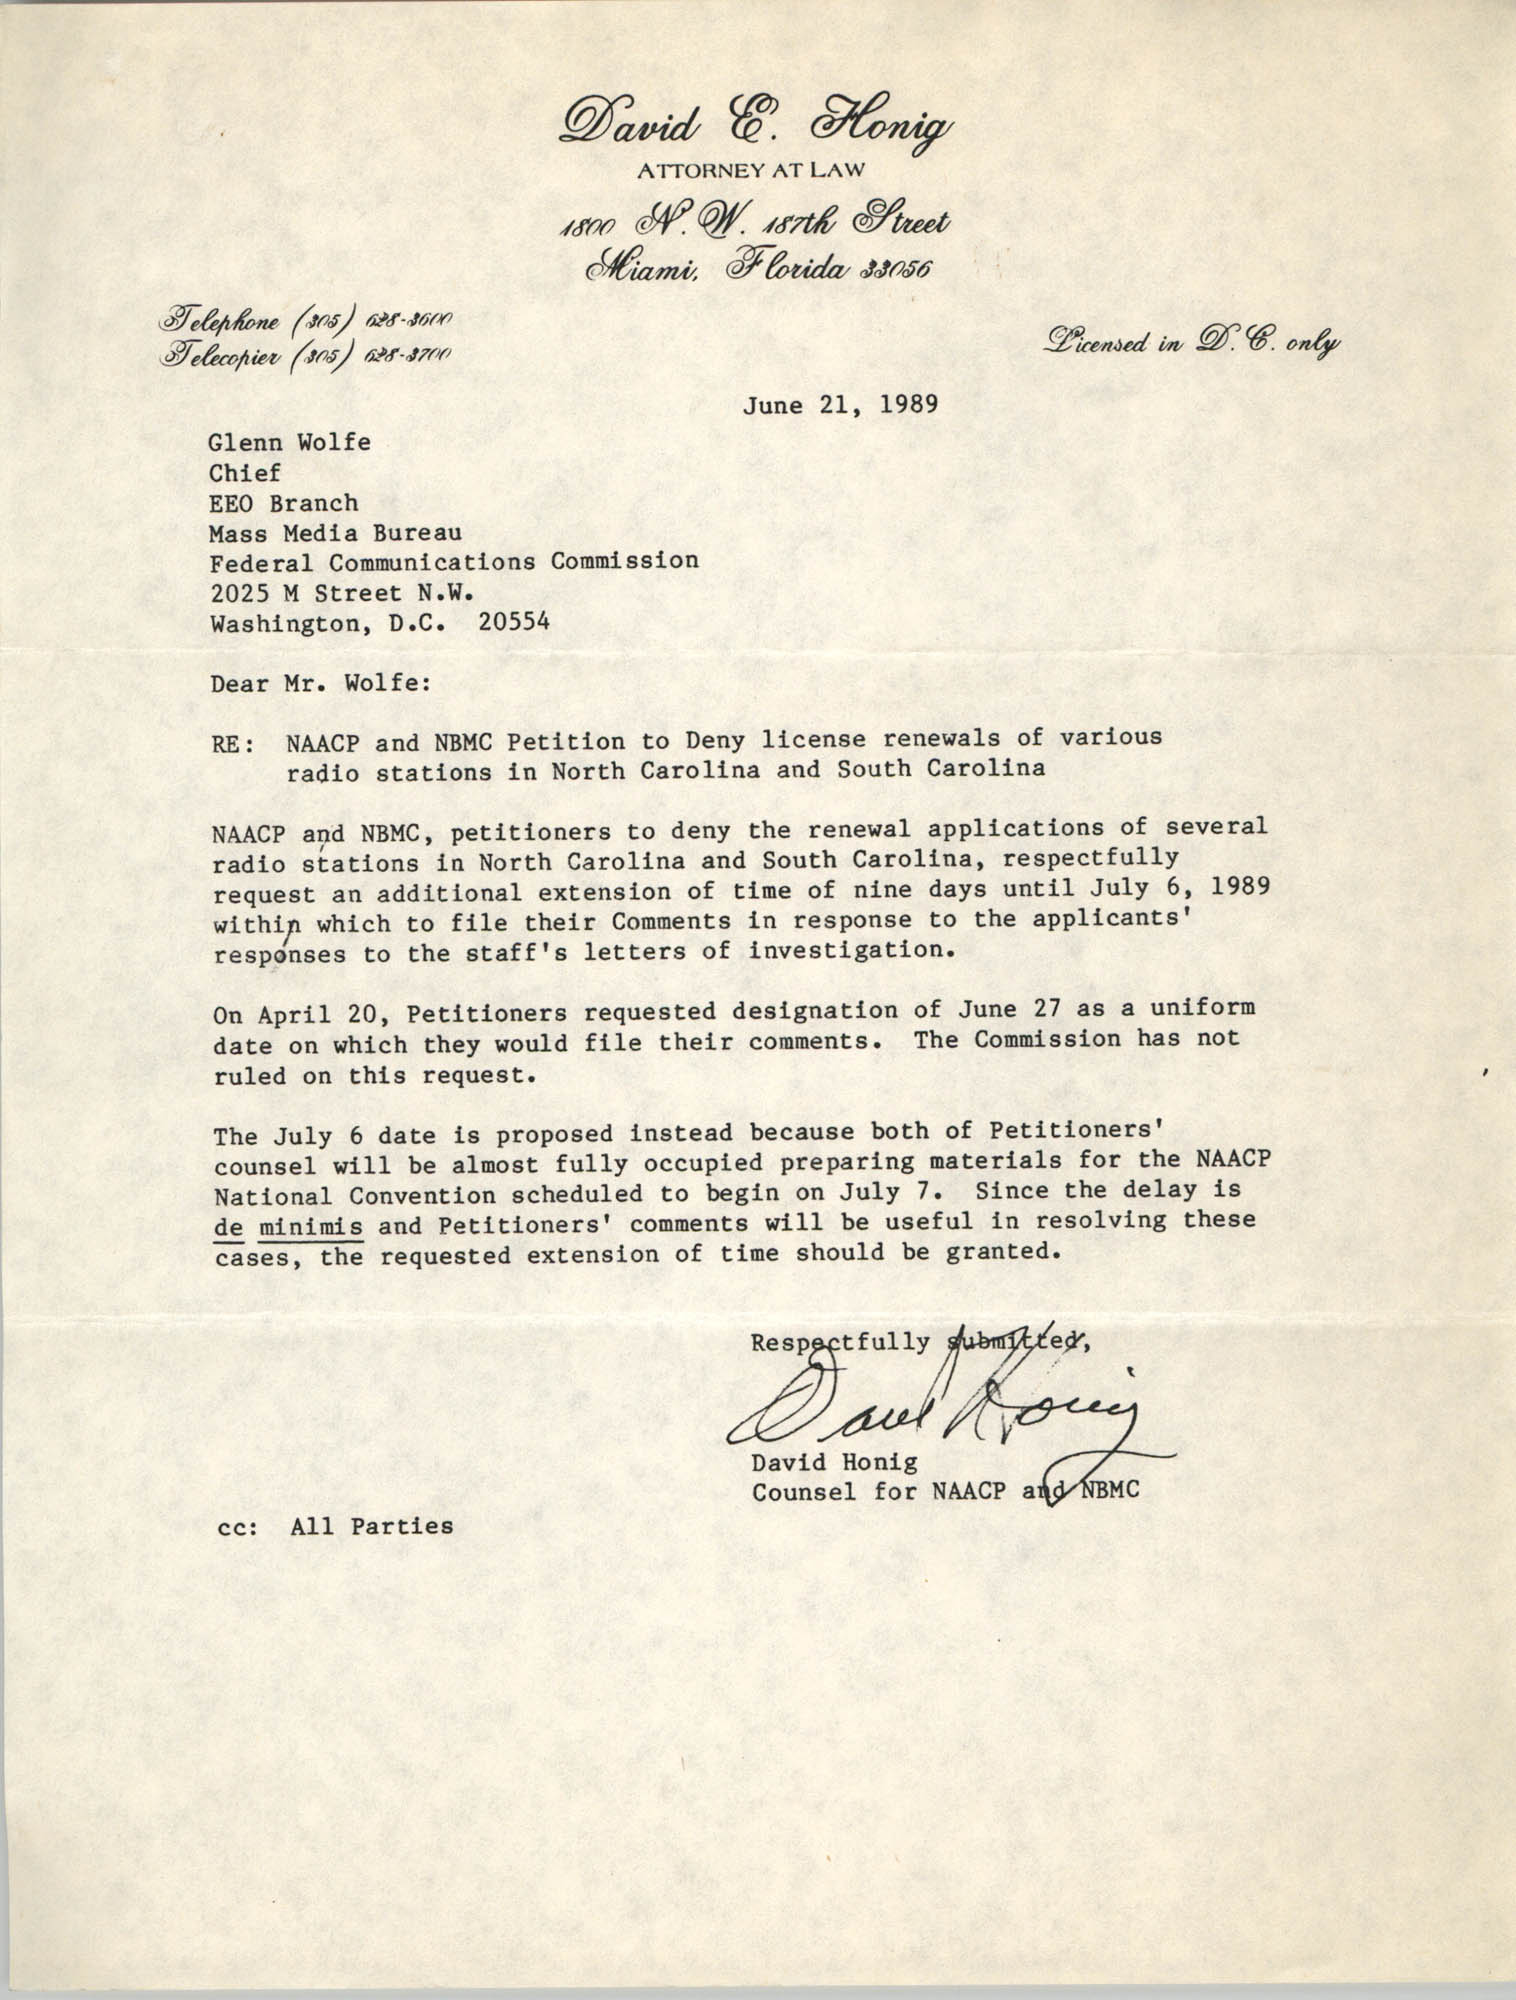 Letter from David Honig to Glenn Wolfe, June 21, 1989